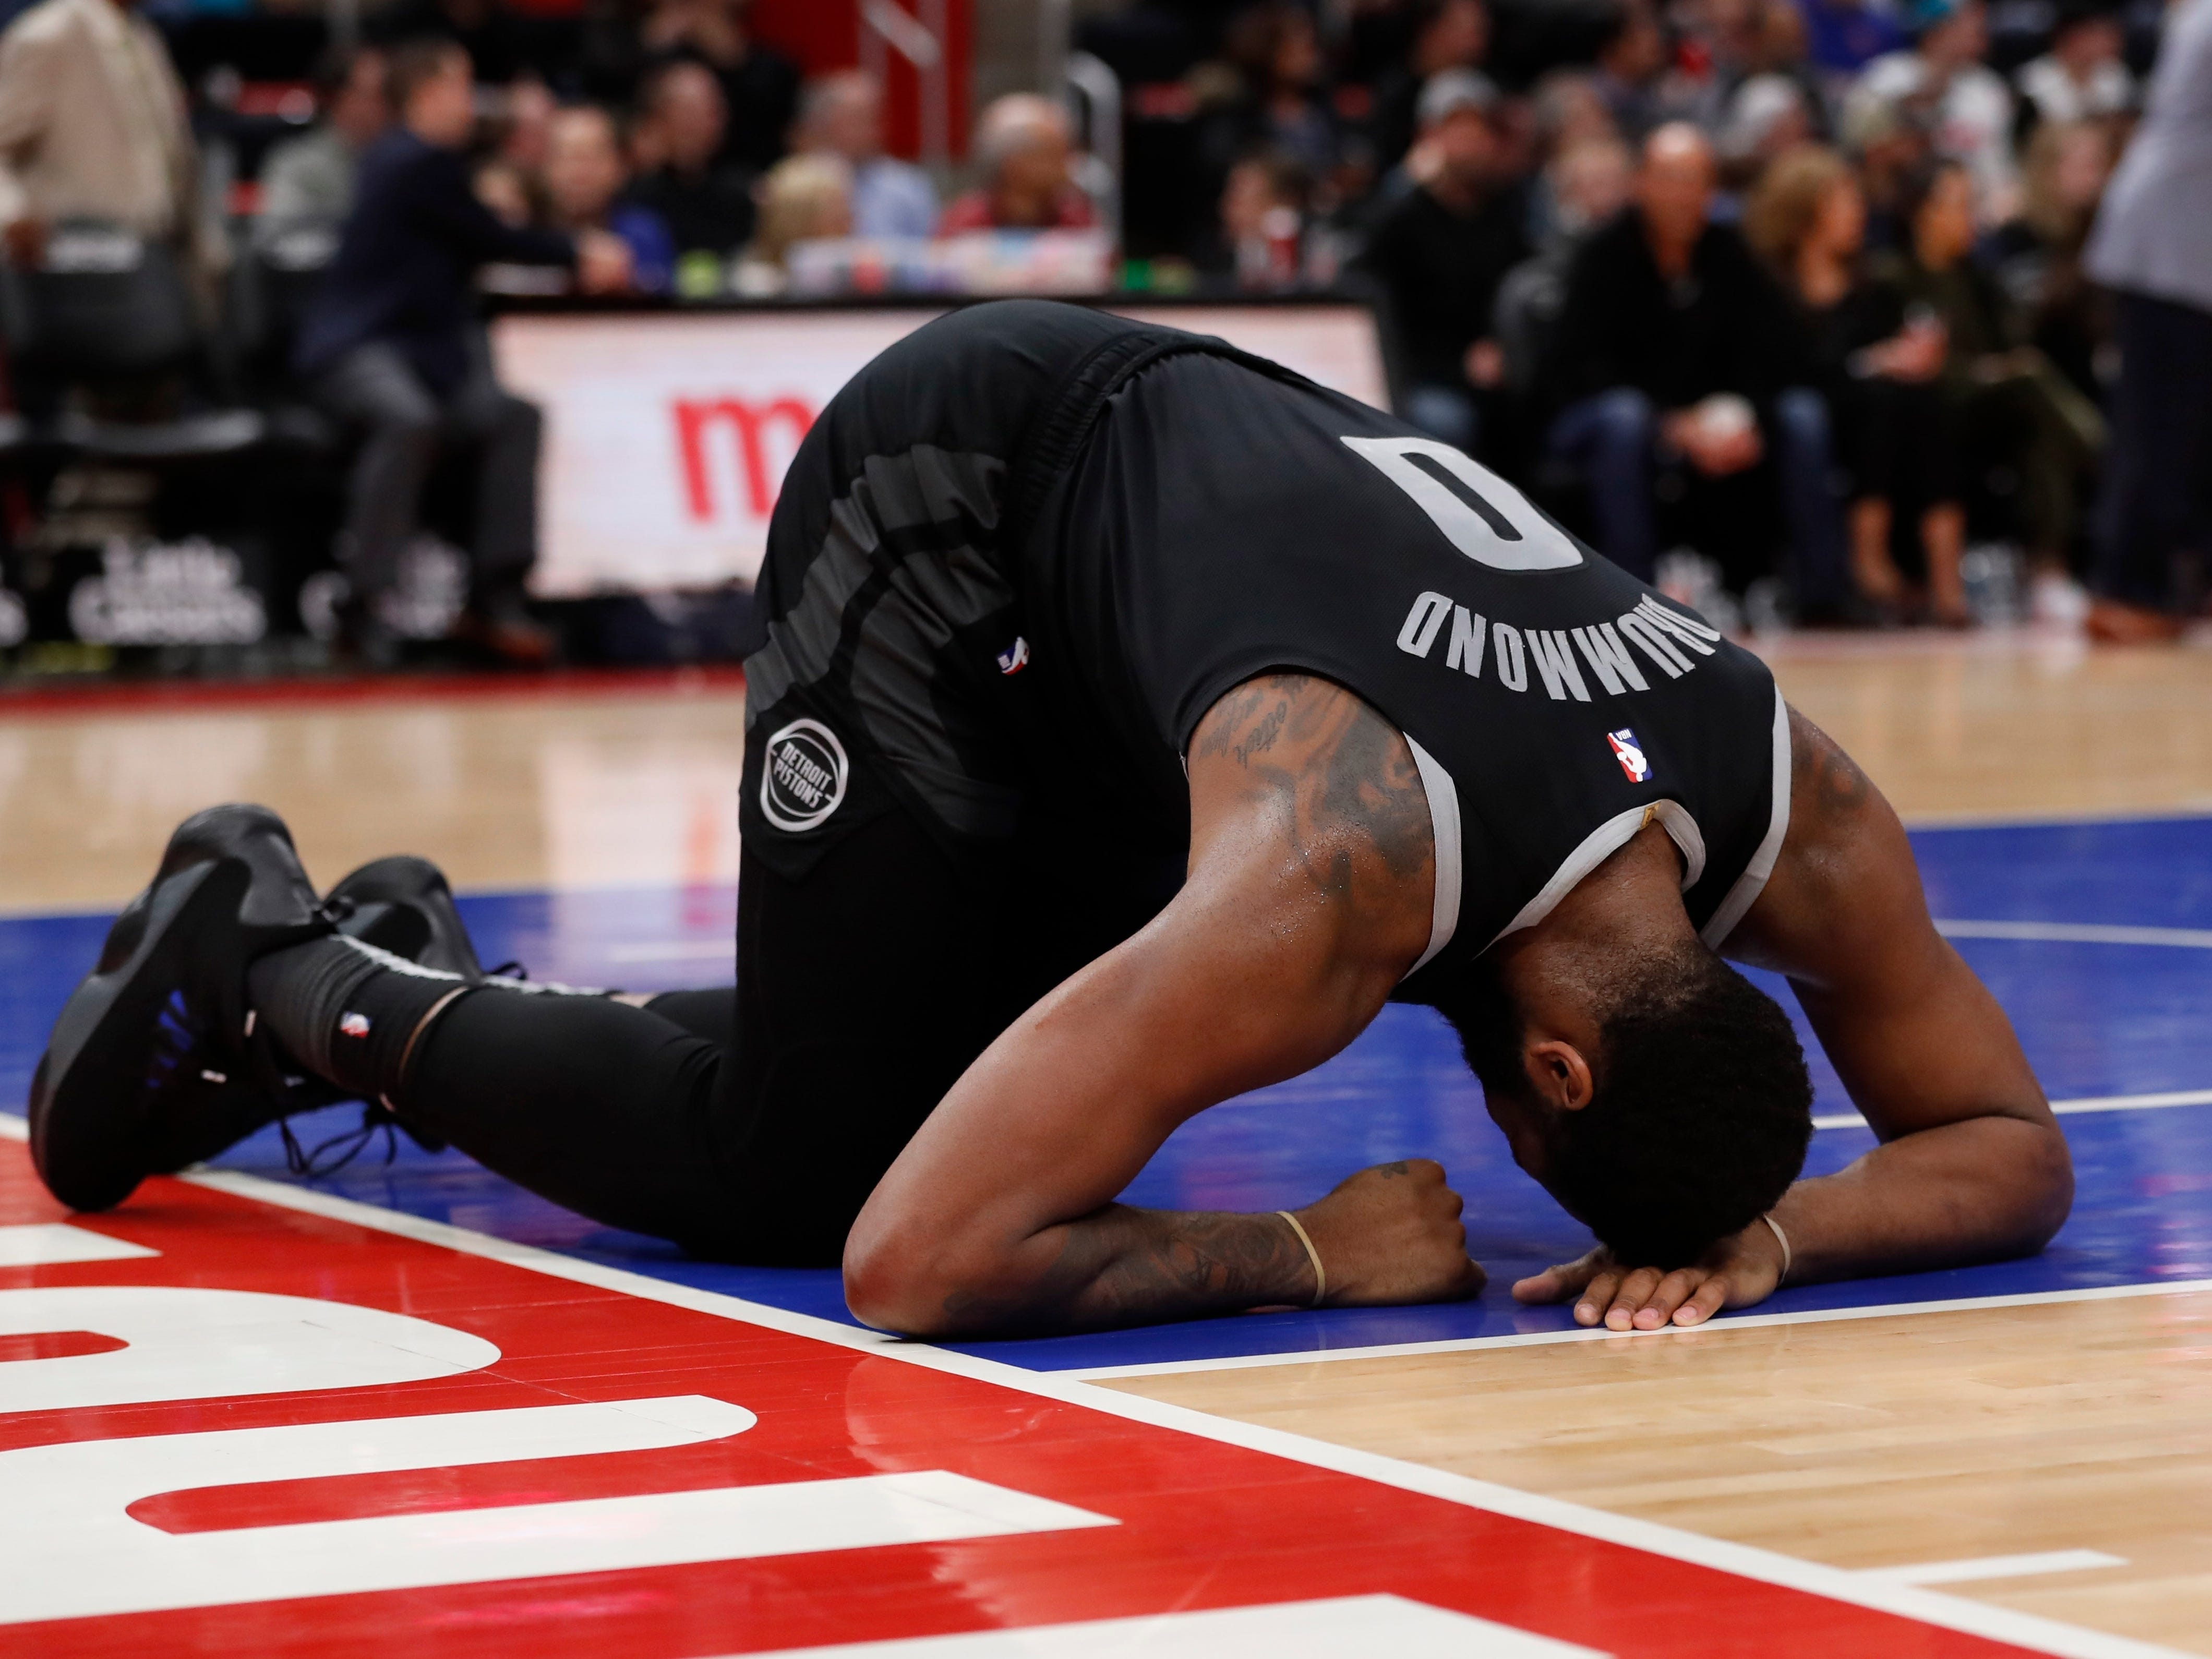 Detroit Pistons center Andre Drummond recovers from a hit to the face during the first half.